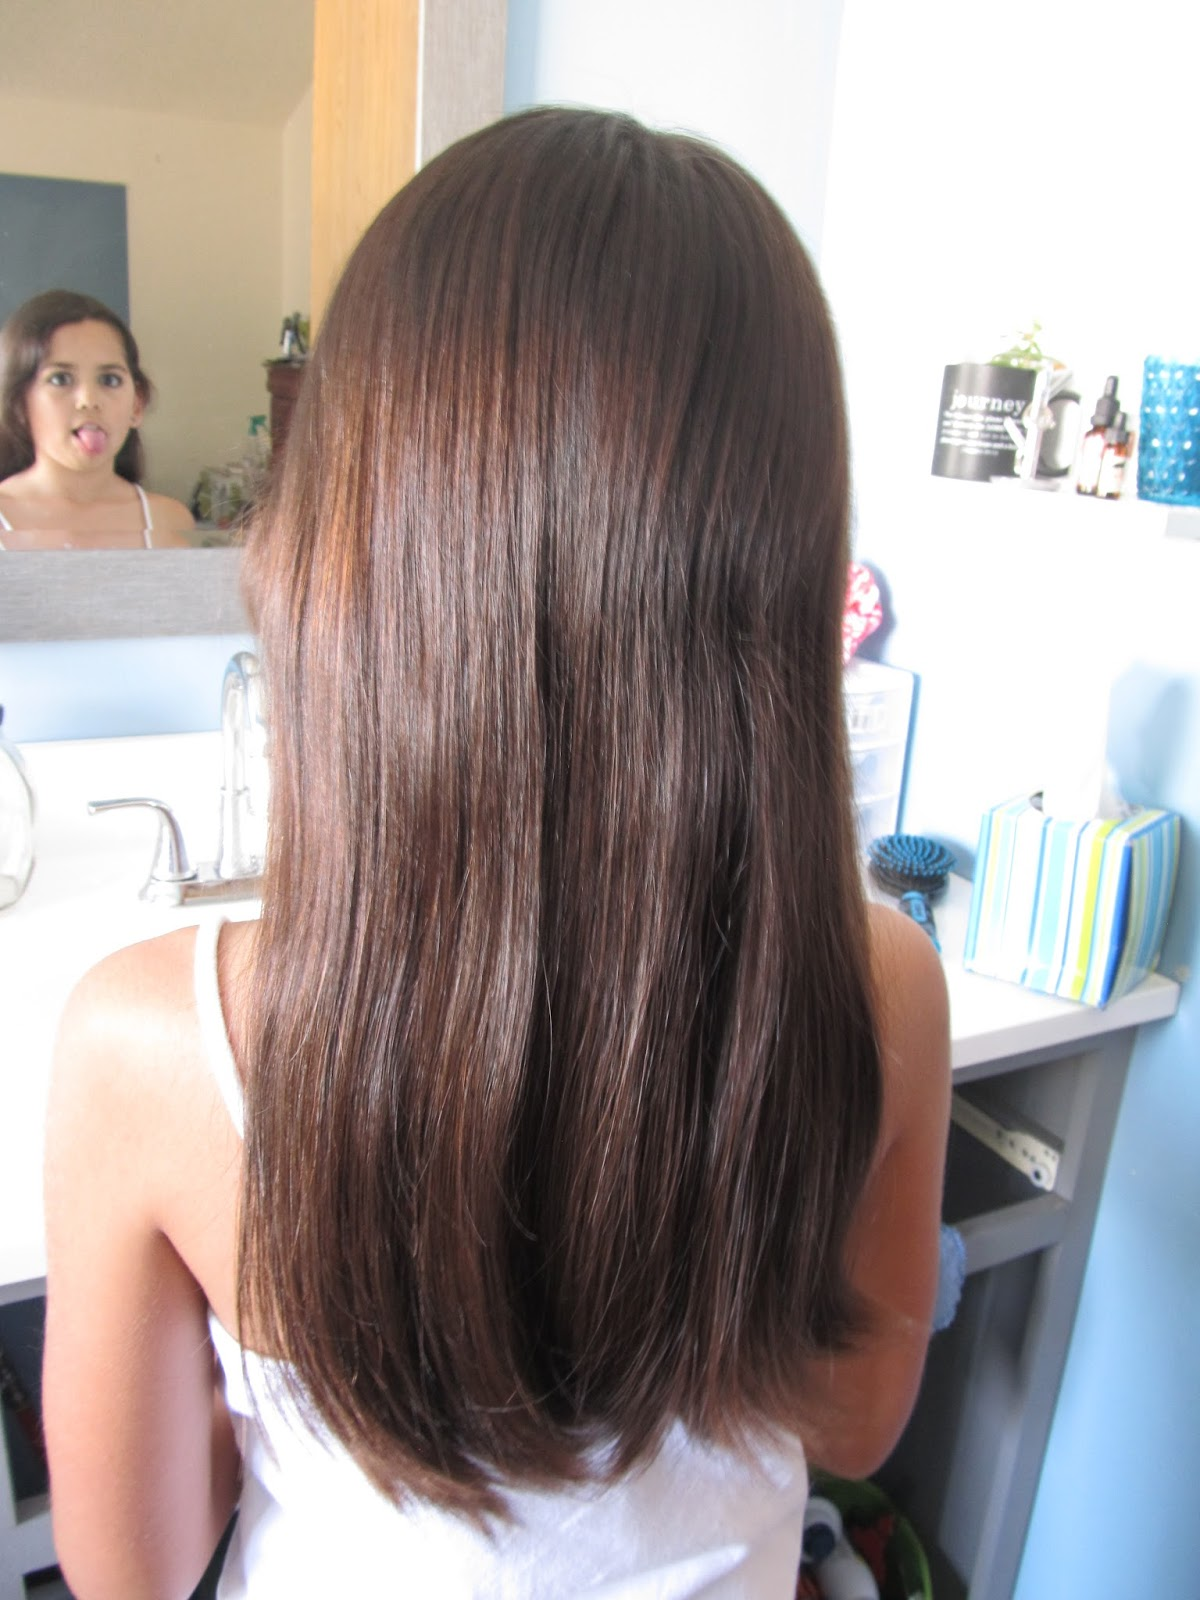 Got To Try It Mom: Cutting Hair At Home With The CreaClip Review